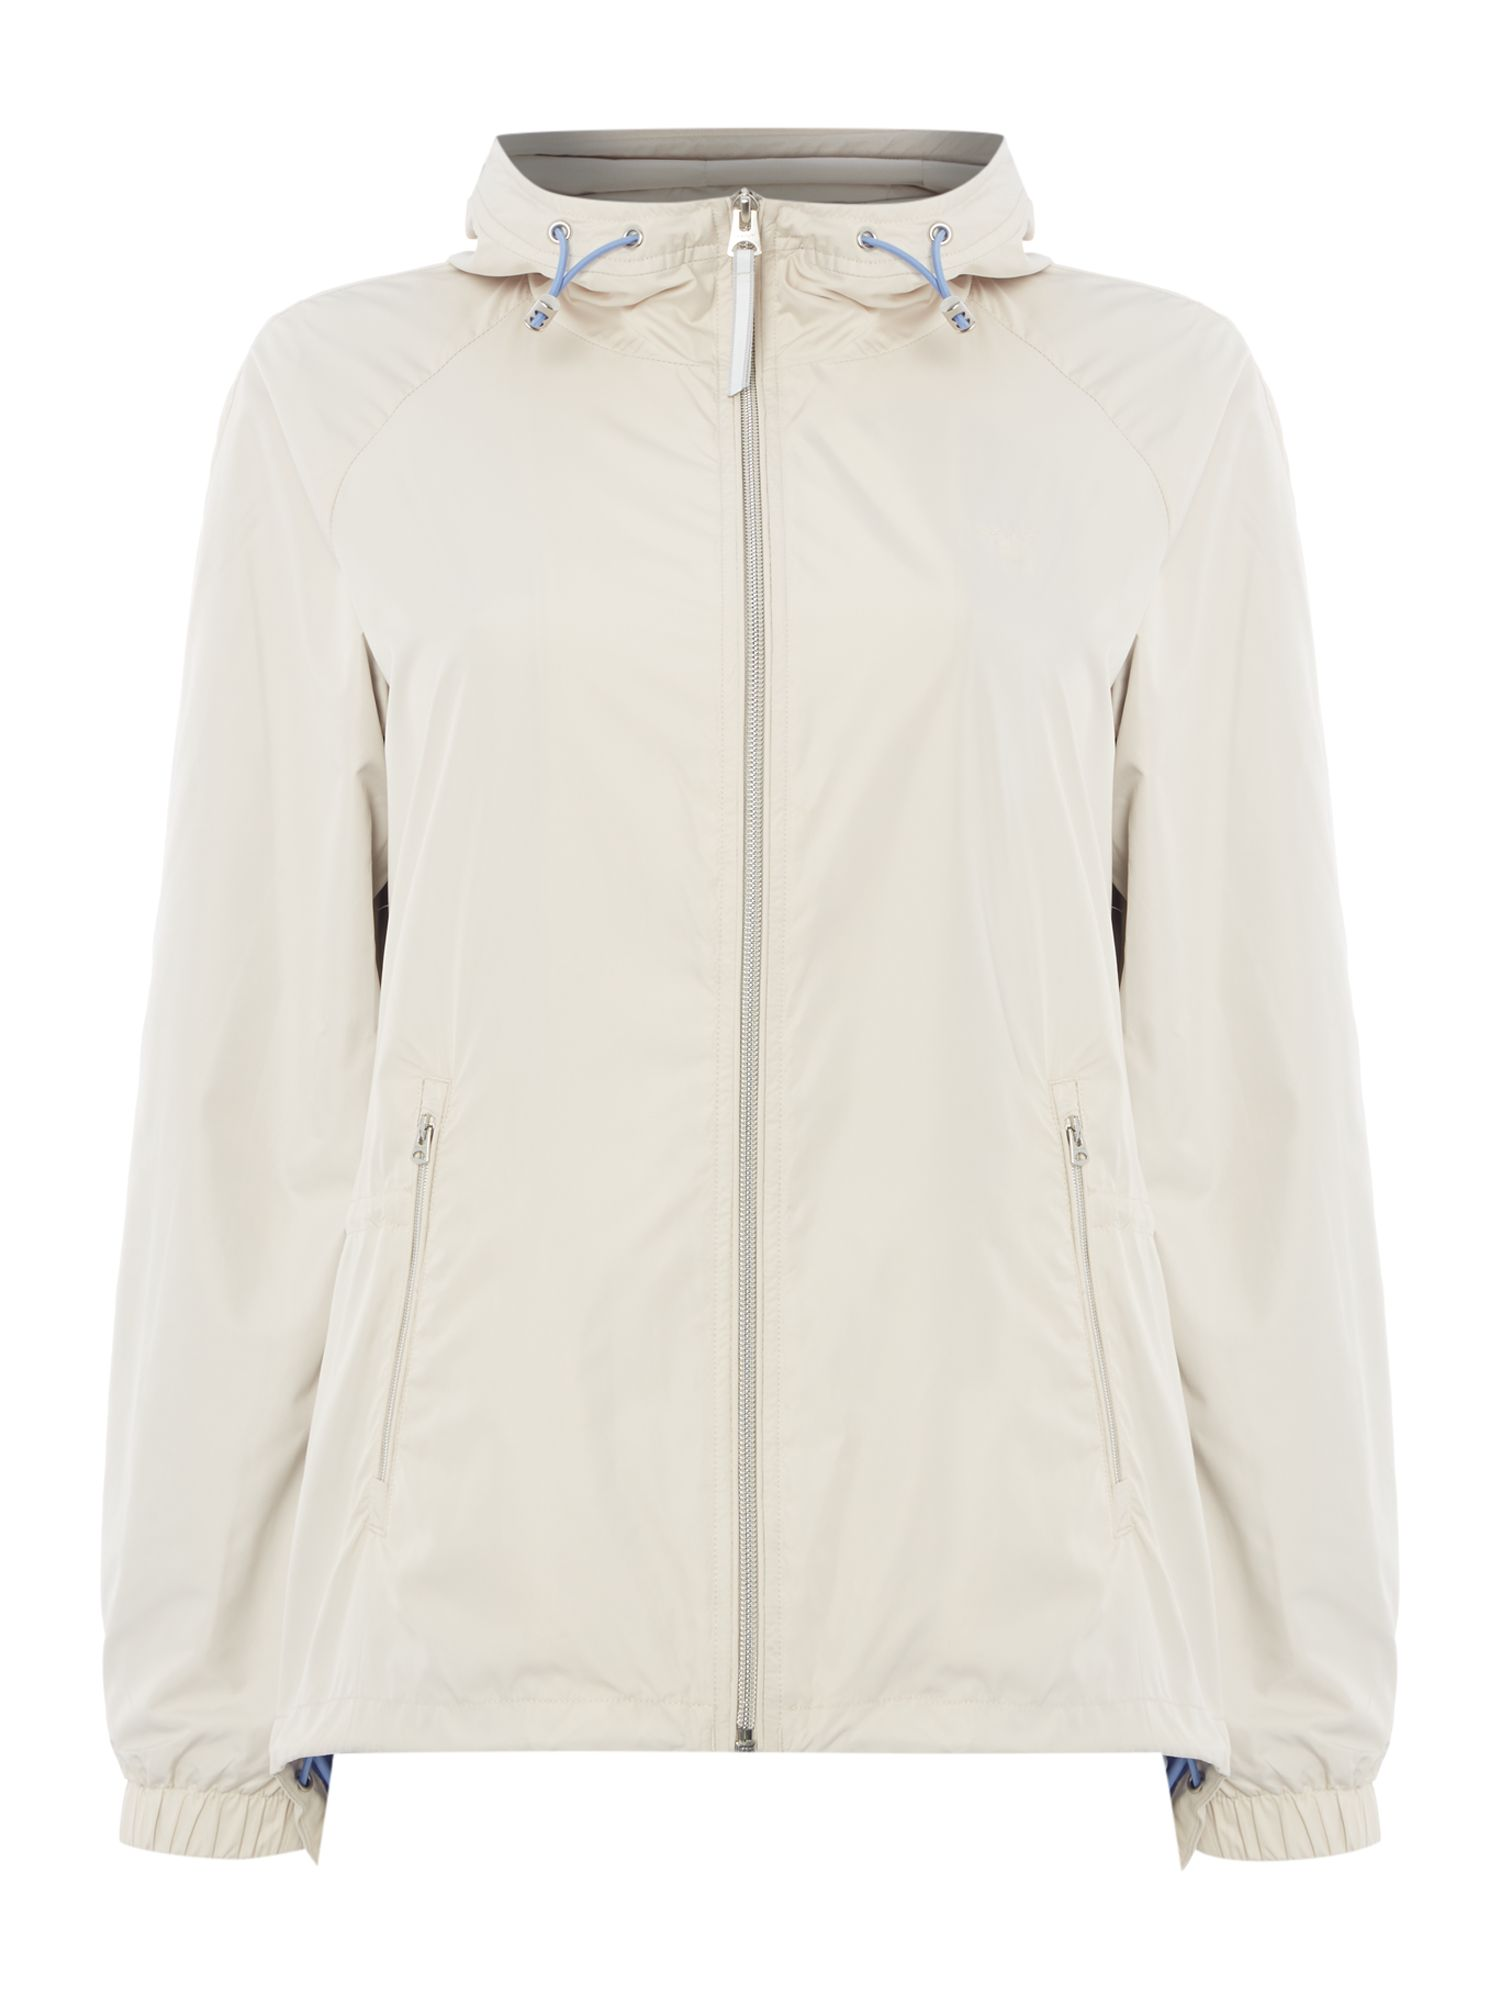 Gant Windbreaker jacket, Light Grey